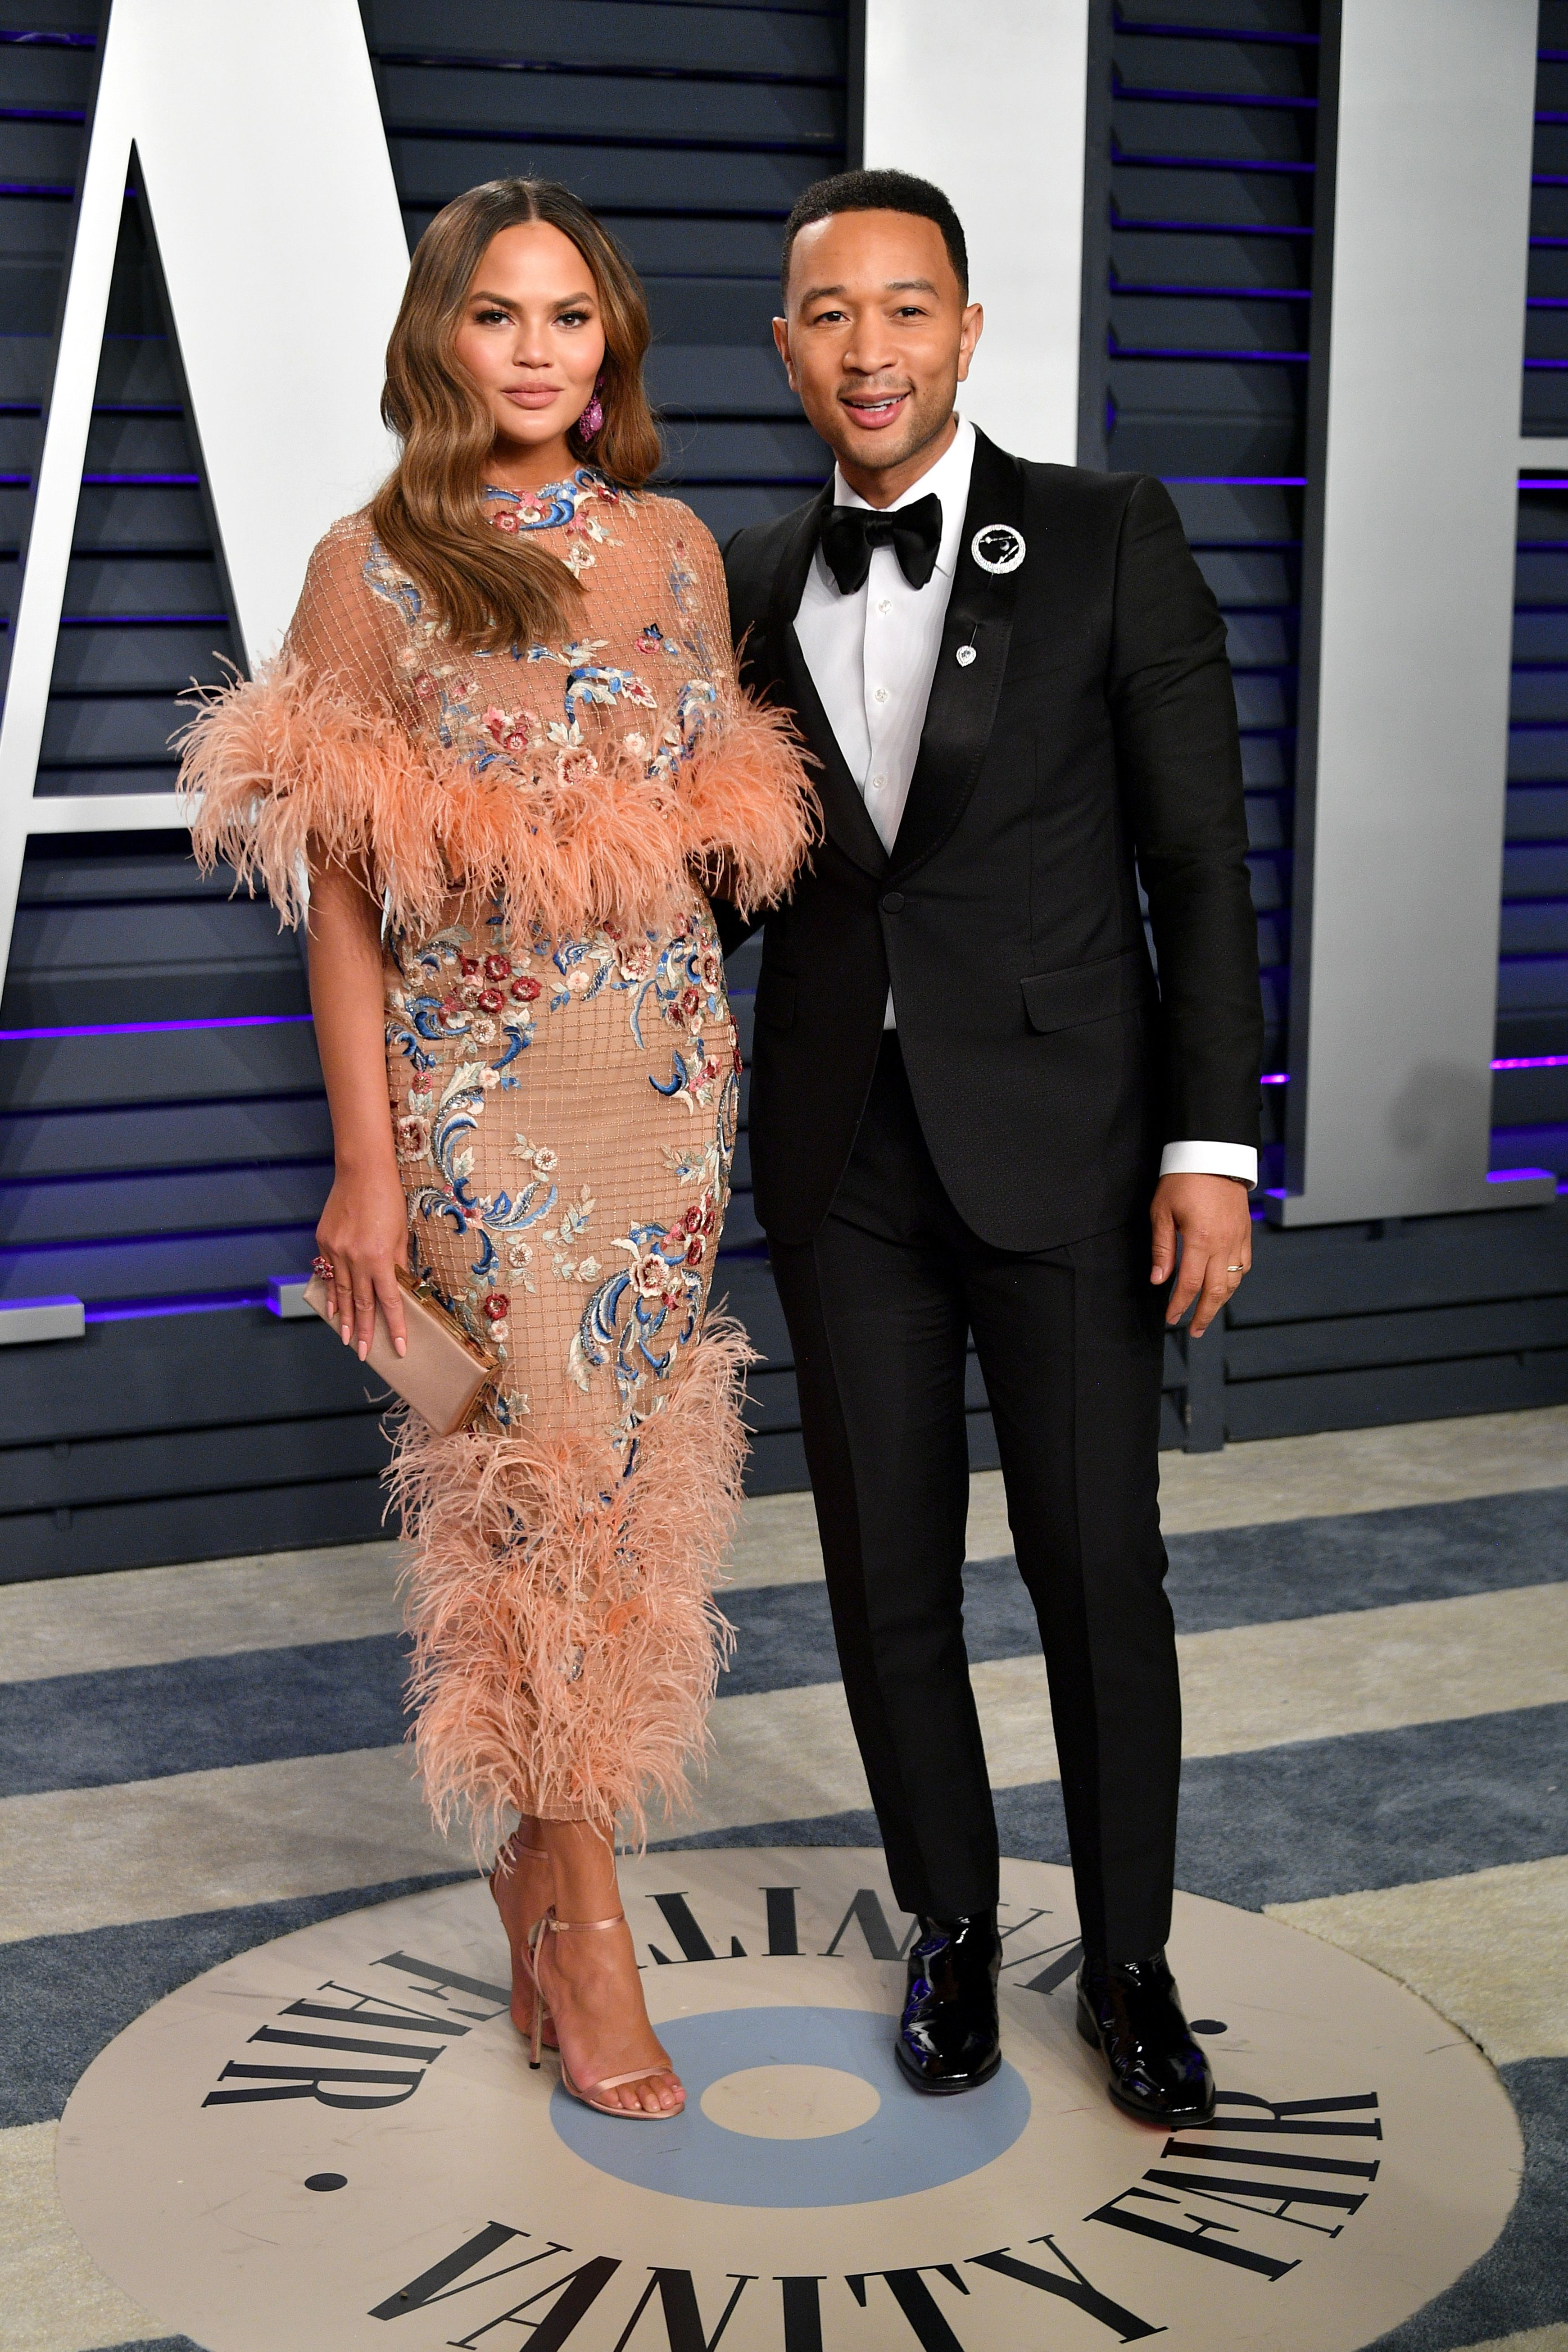 Chrissy Teigen and John Legend at the Vanity Fair Oscar Party / Getty Images